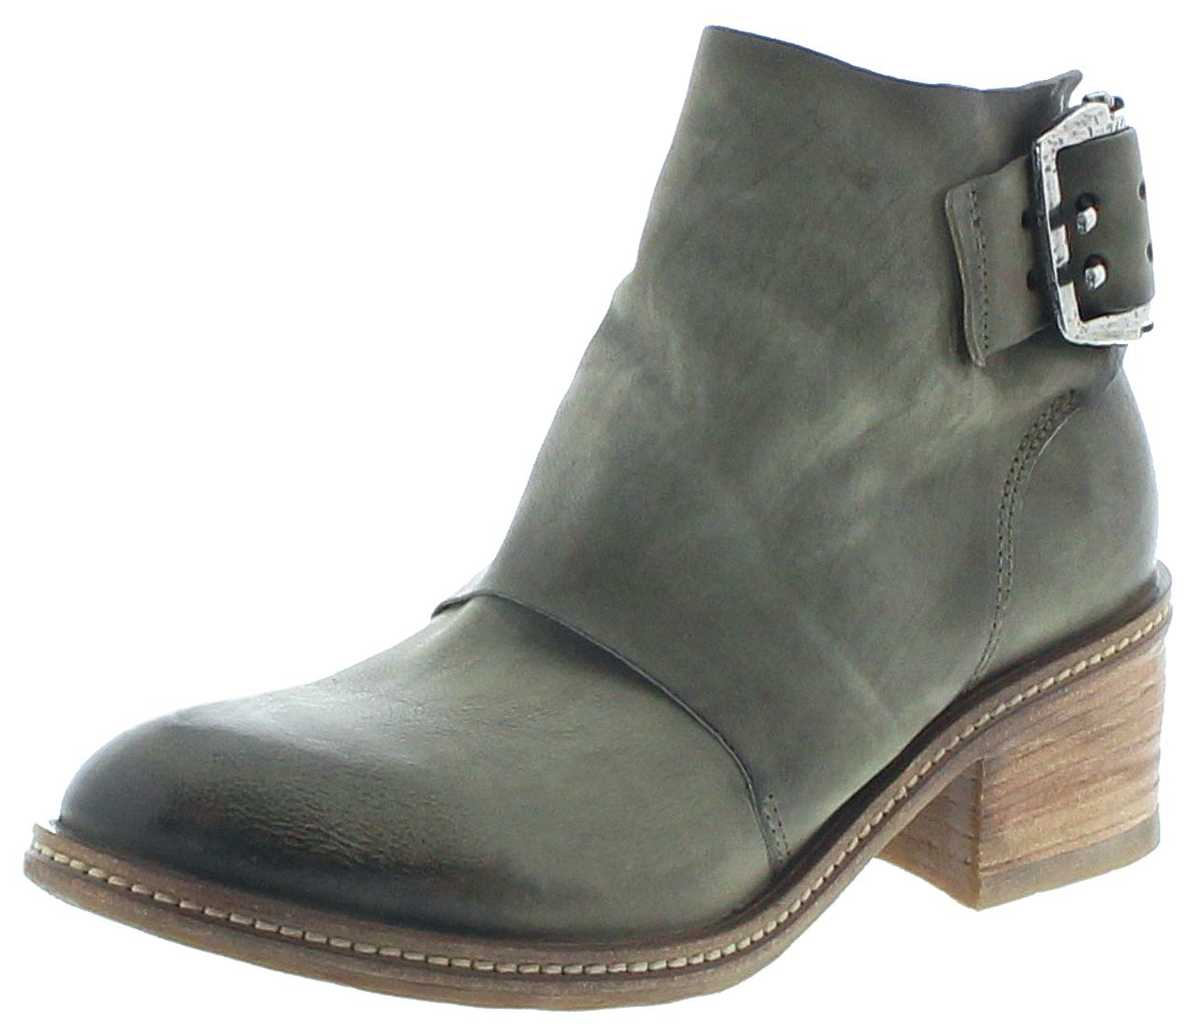 A.S.98 694203 Military Women Fashion Shoes - green